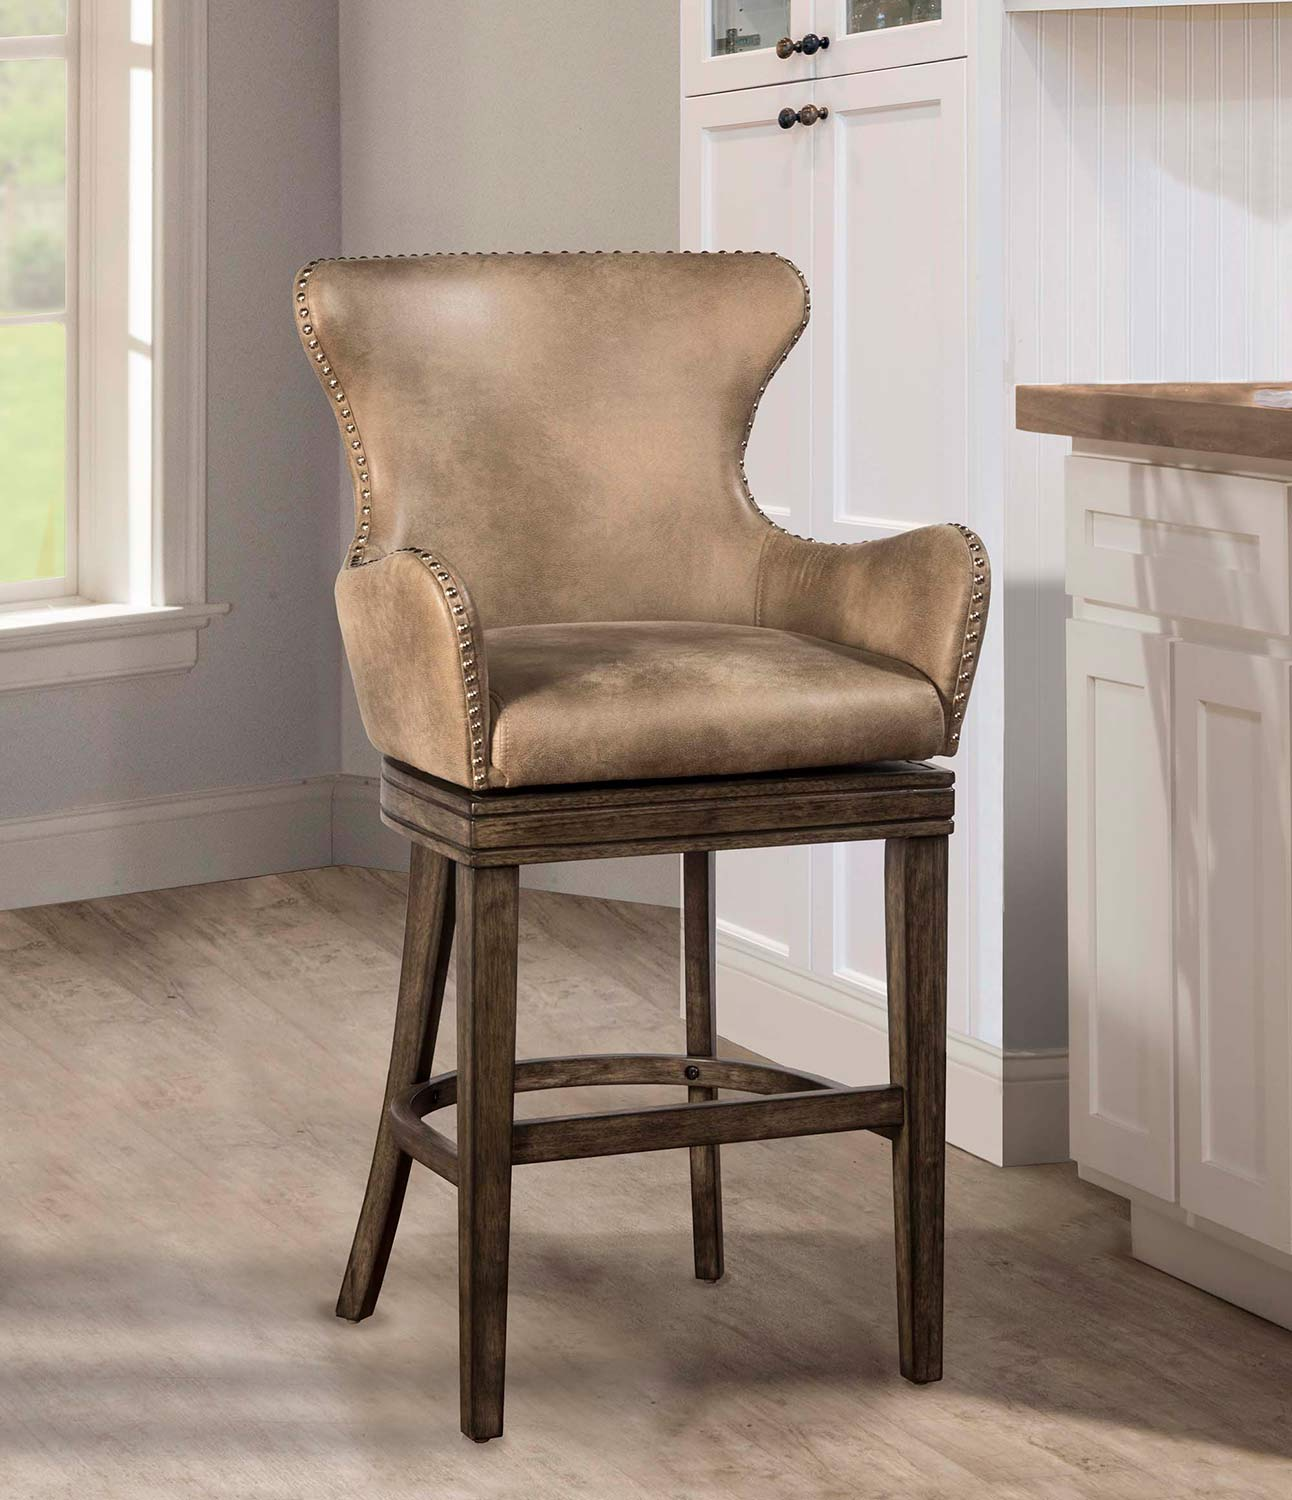 Hillsdale Caydena Swivel Bar Stool - Rustic Gray